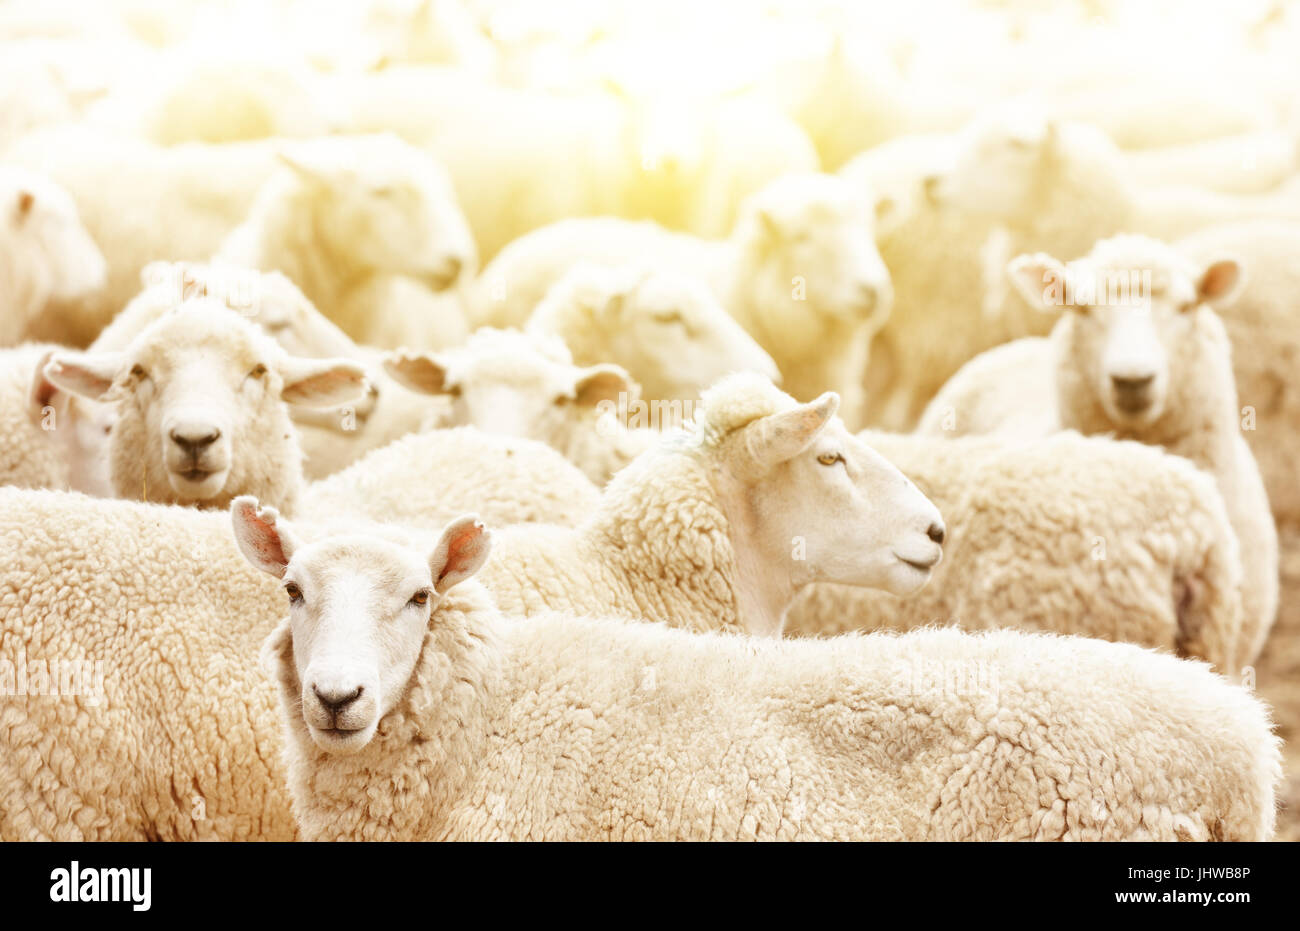 Livestock farm, flock of sheep - Stock Image